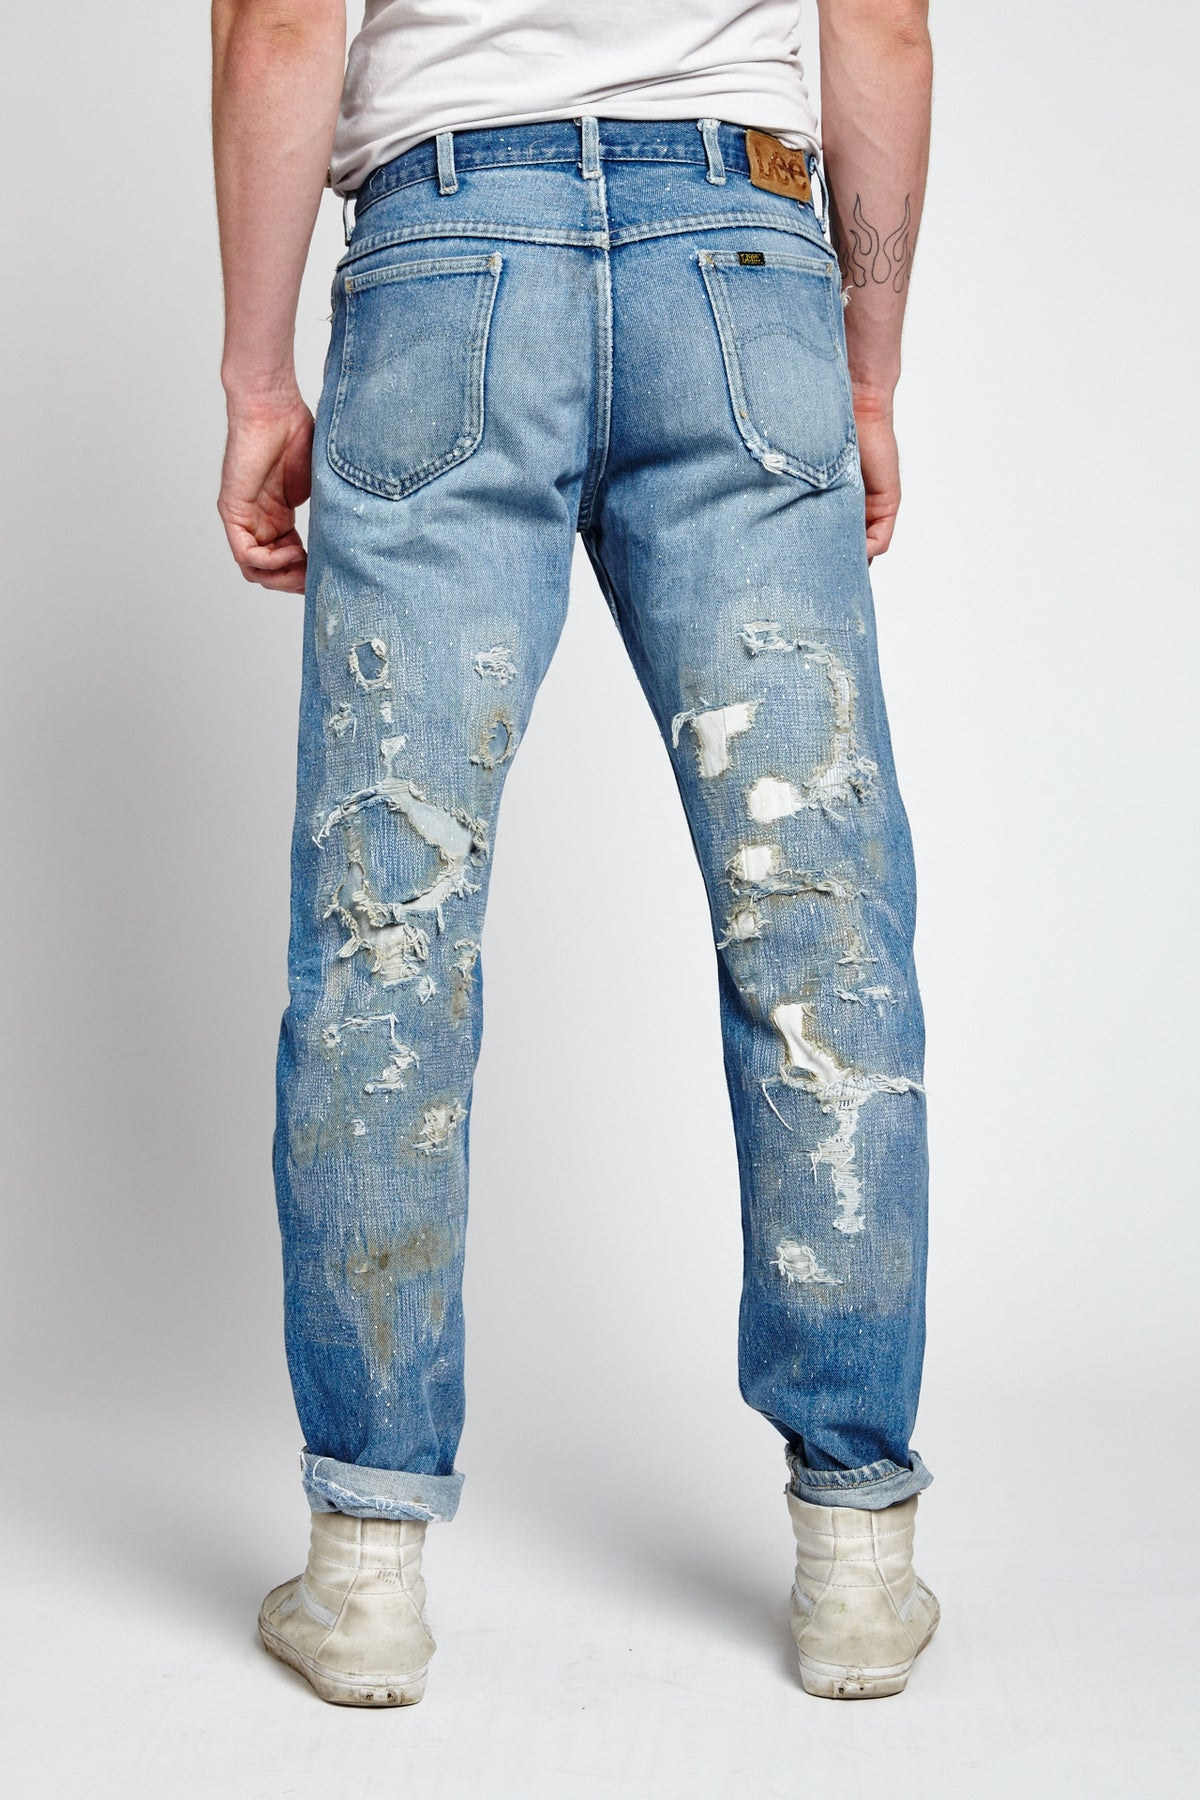 MILLIE RIGHE DISTRESSED COTTON BLUE 34 W JEANS-BOTTOMS-Mundane Official-34-BLUE-Mundane Official